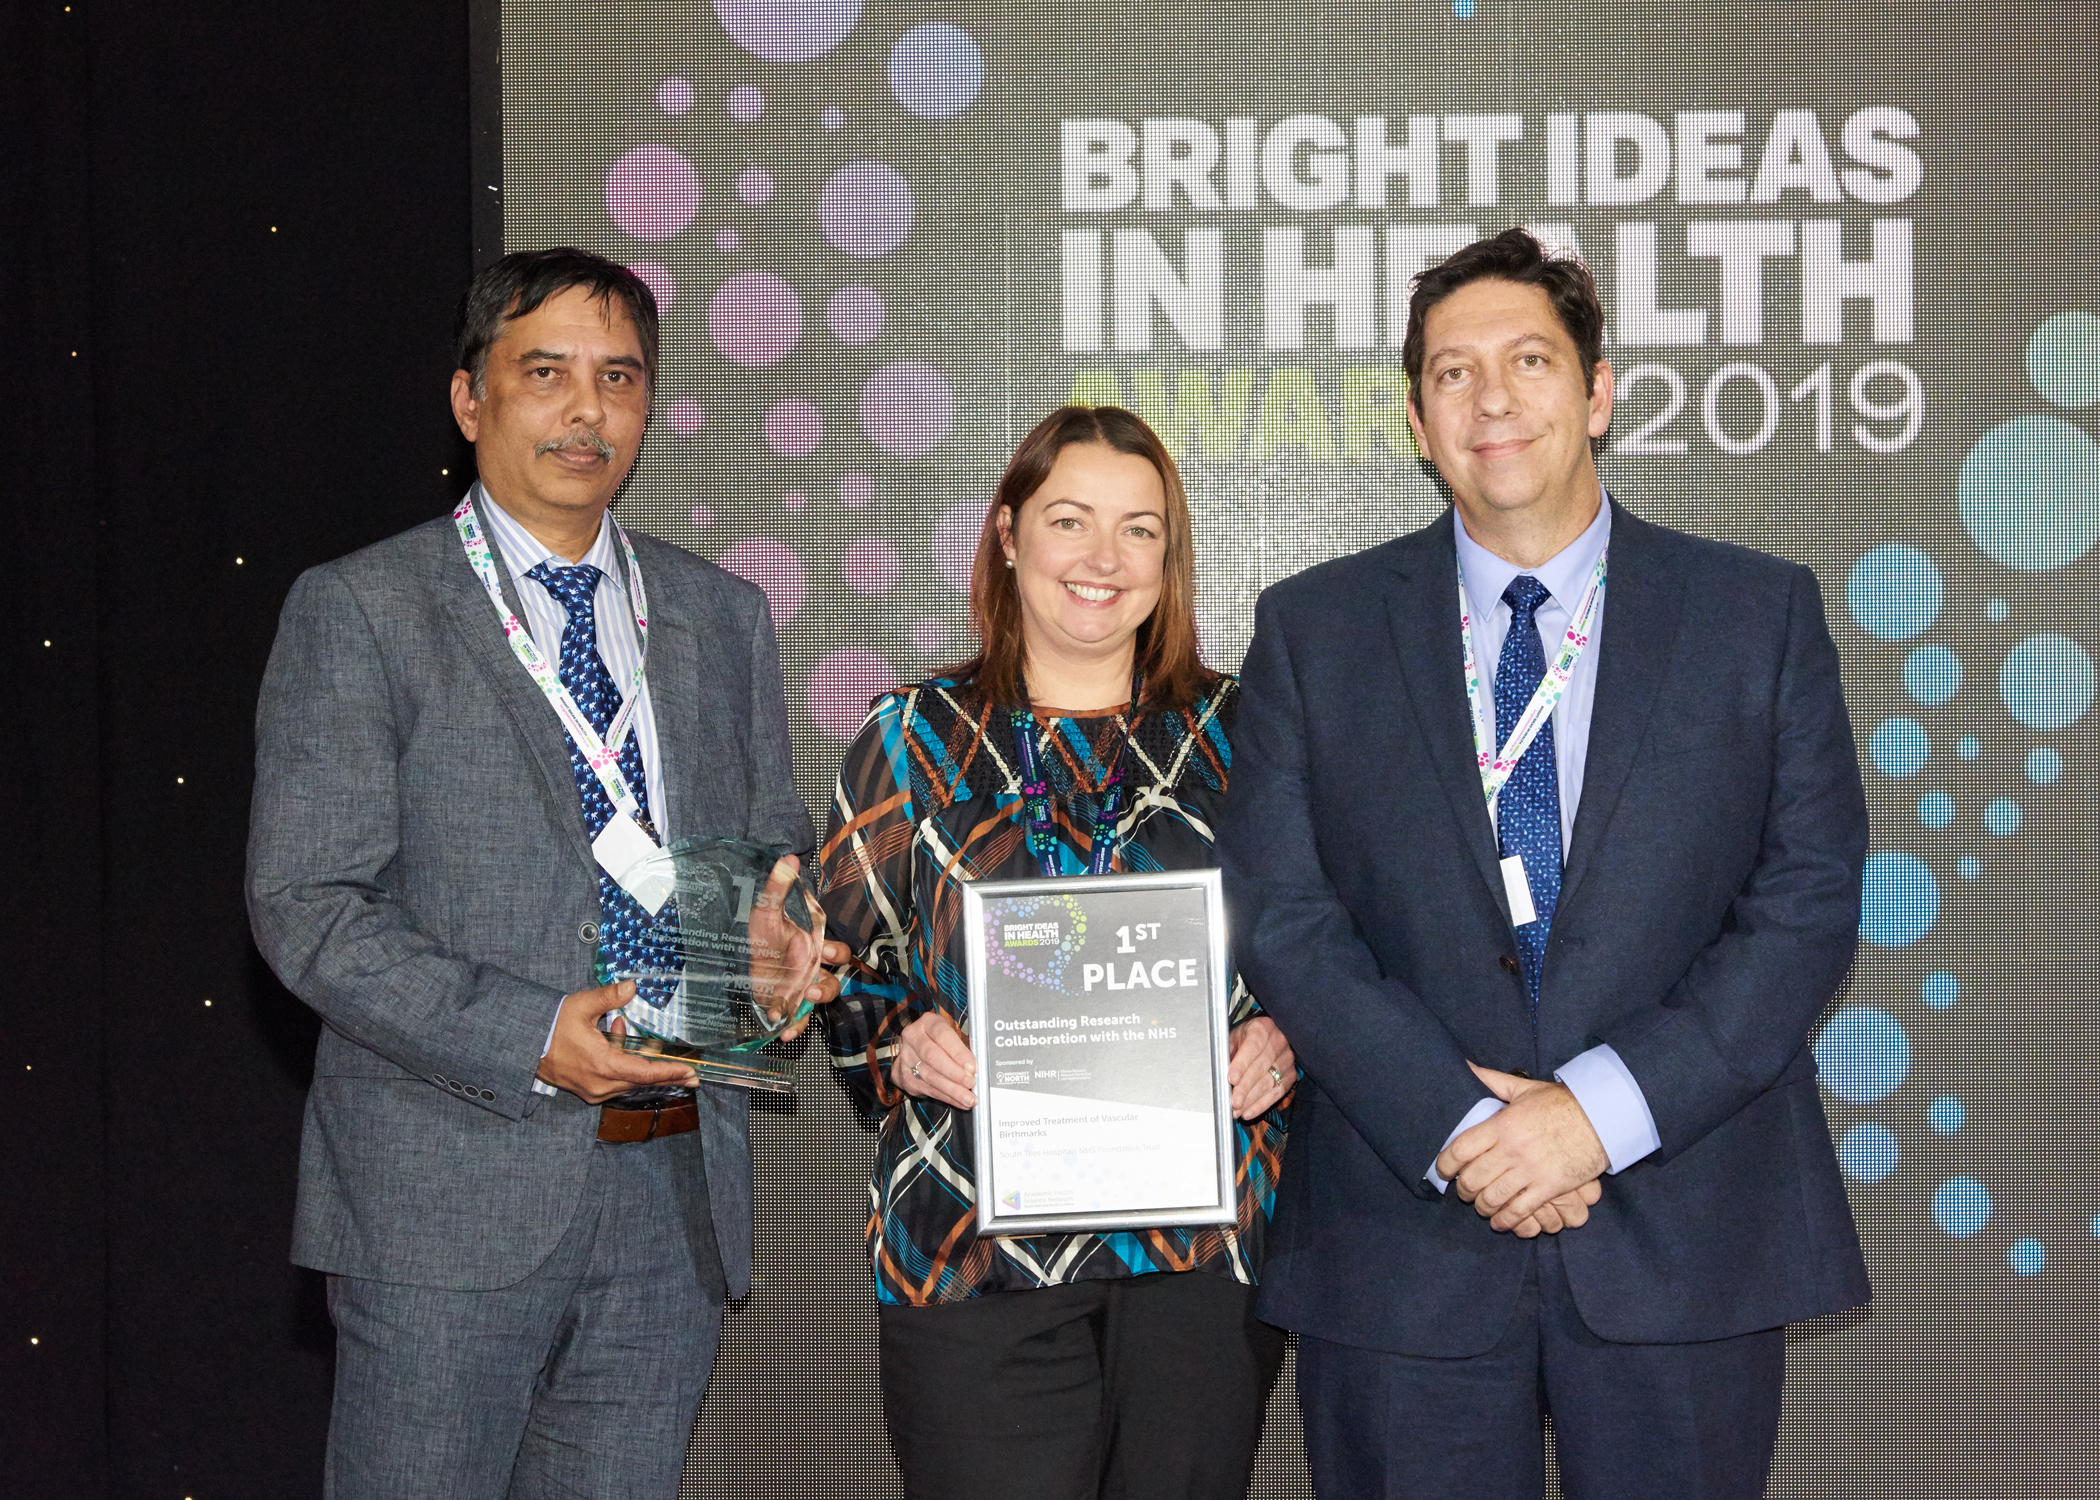 South Tees and Darlington NHS Trusts win awards for innovation - The Northern Echo